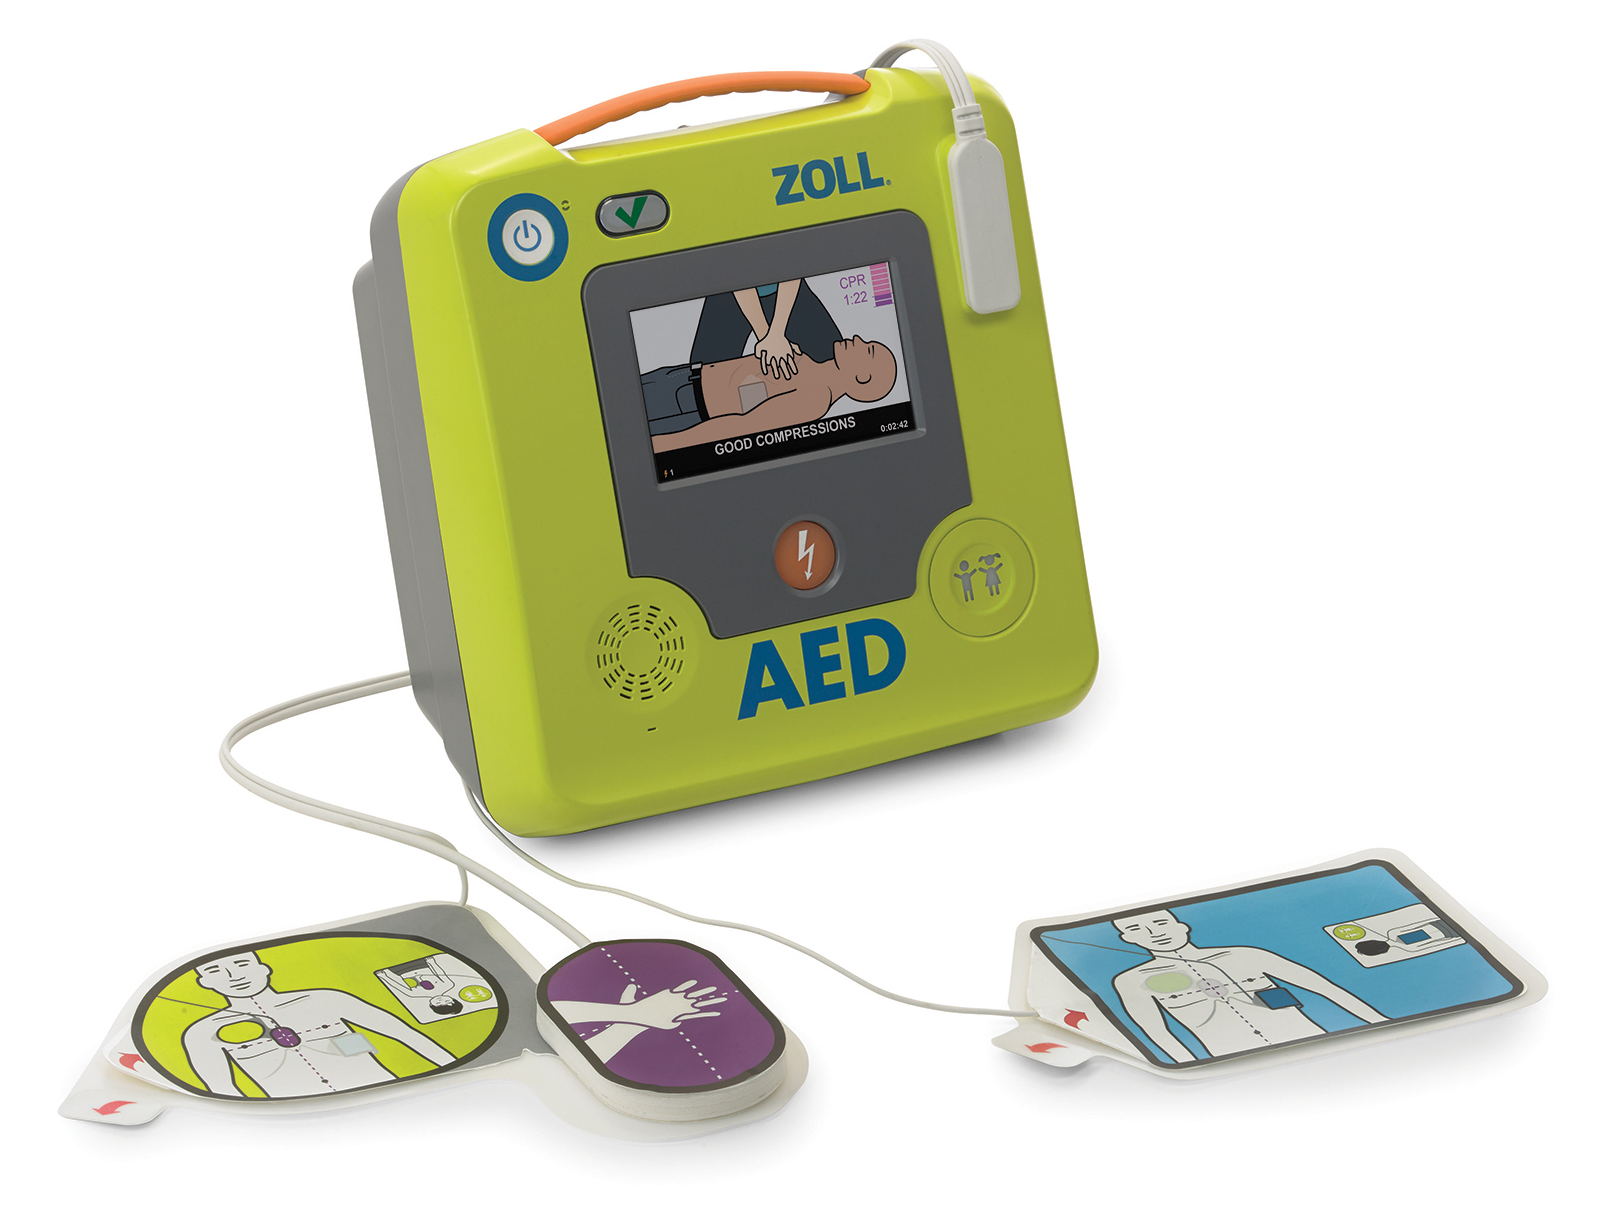 Northrock Safety Zoll Aed 3 Cabinet Zoll Aed 3 Cabinet